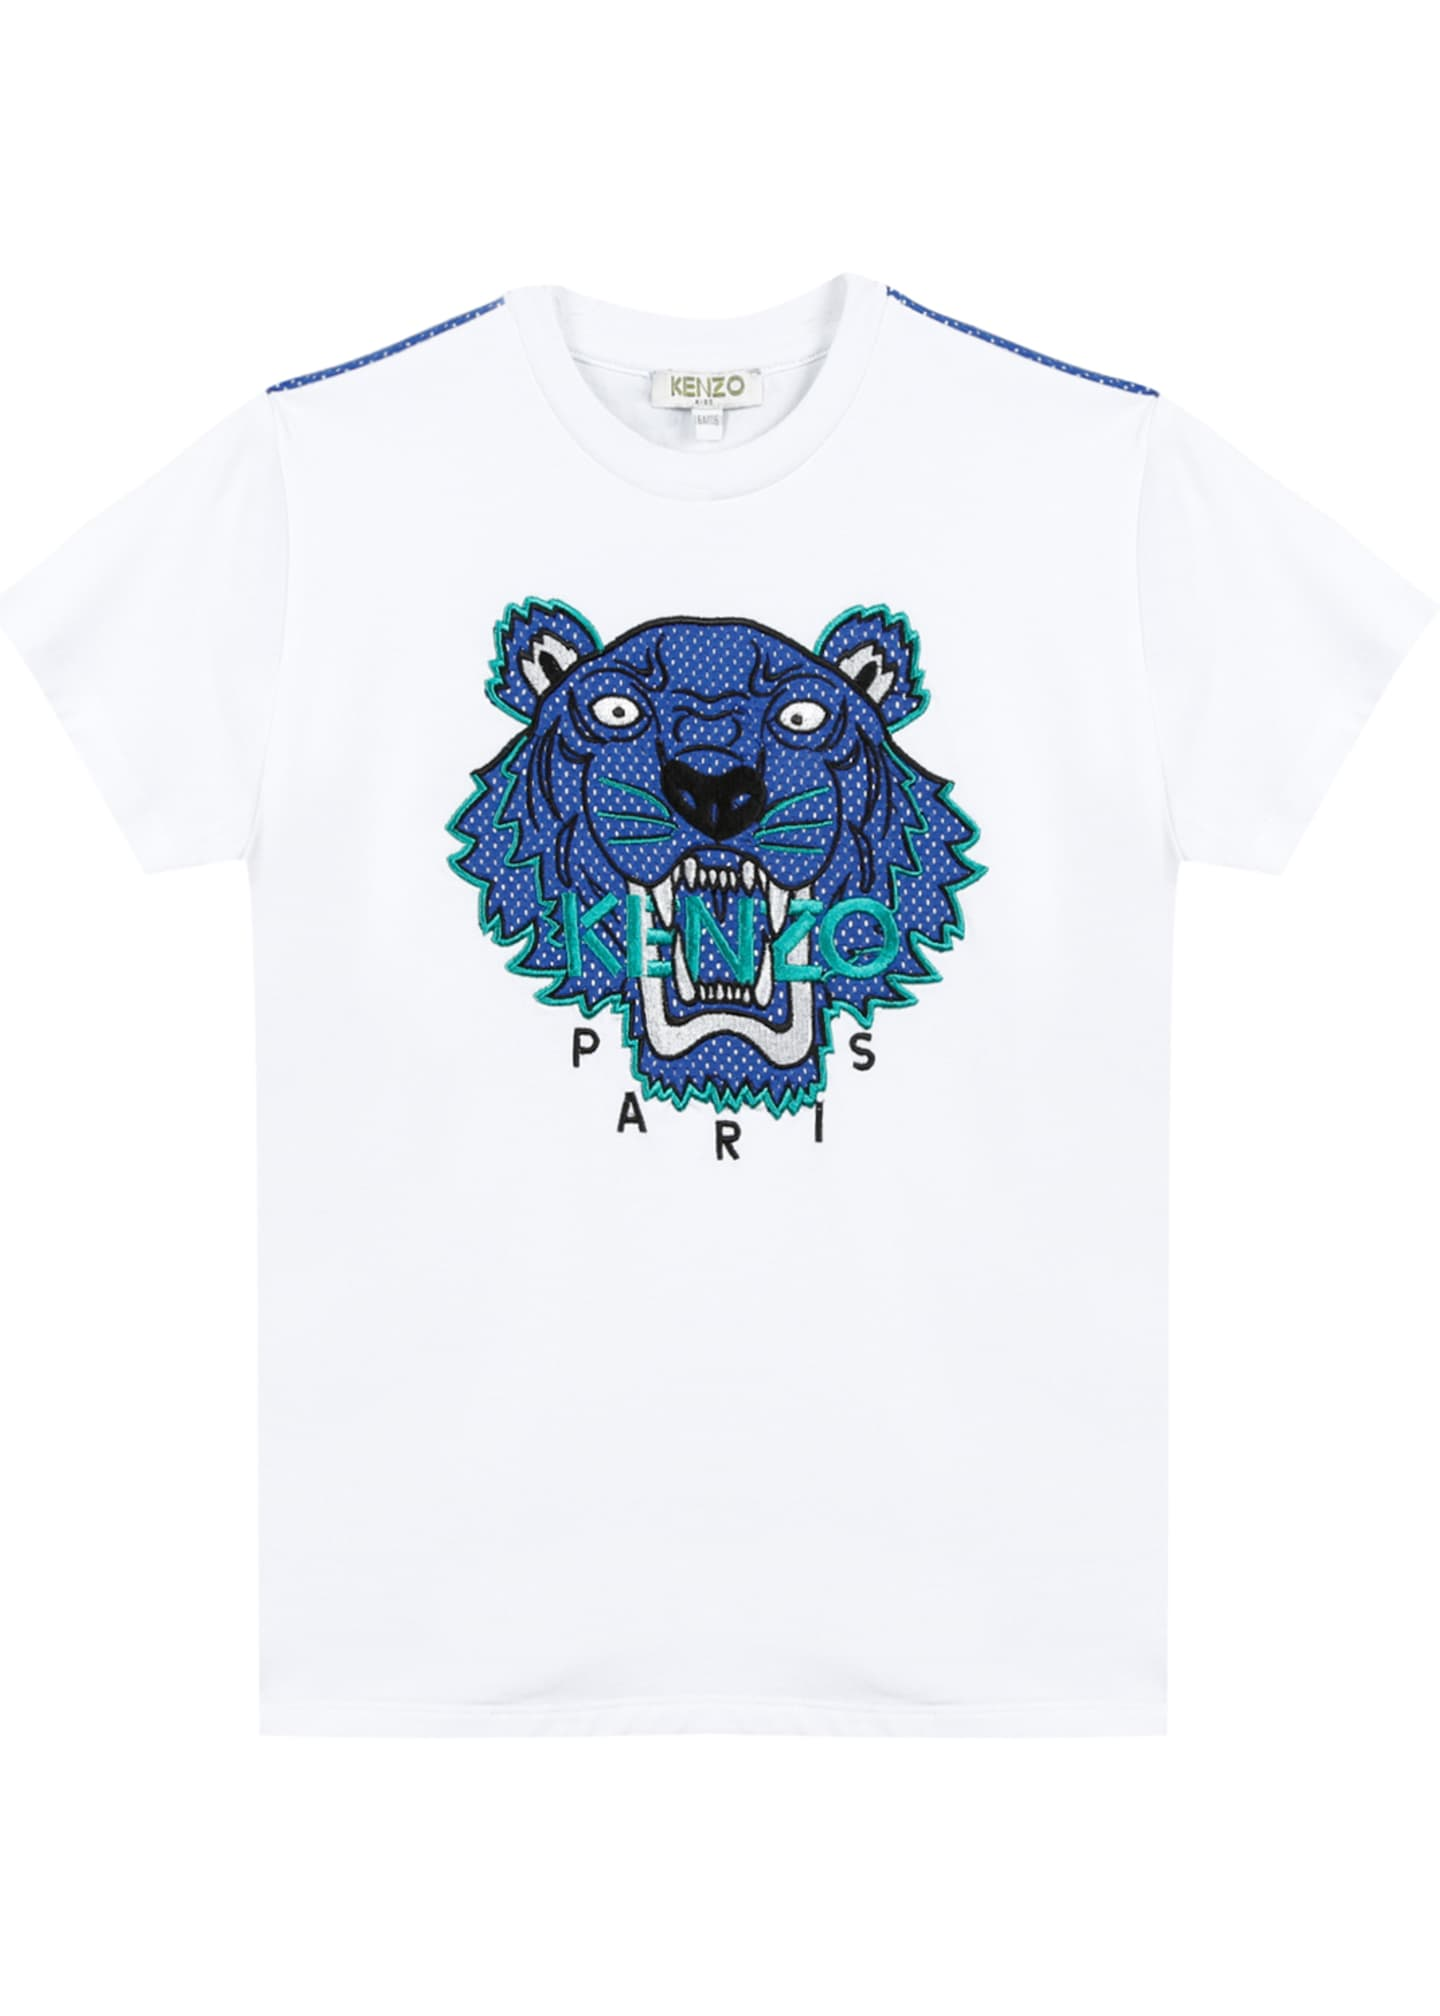 Kenzo Mixed Material Tiger Embroidered T-Shirt, Size 8-12